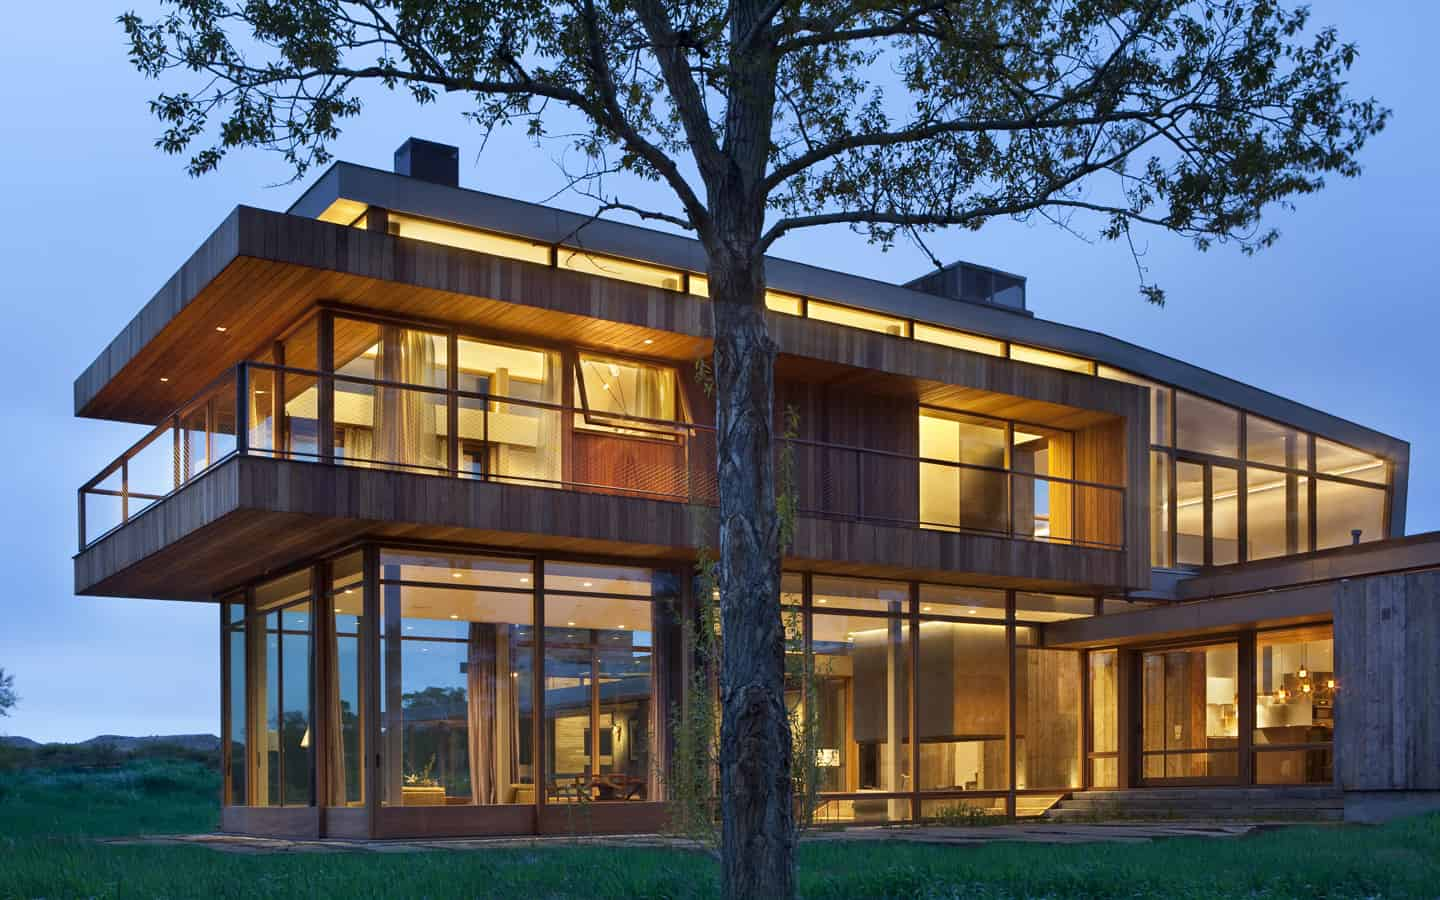 A big timber contemporary house situated on a riverside. It has warm lighting in its interiors.